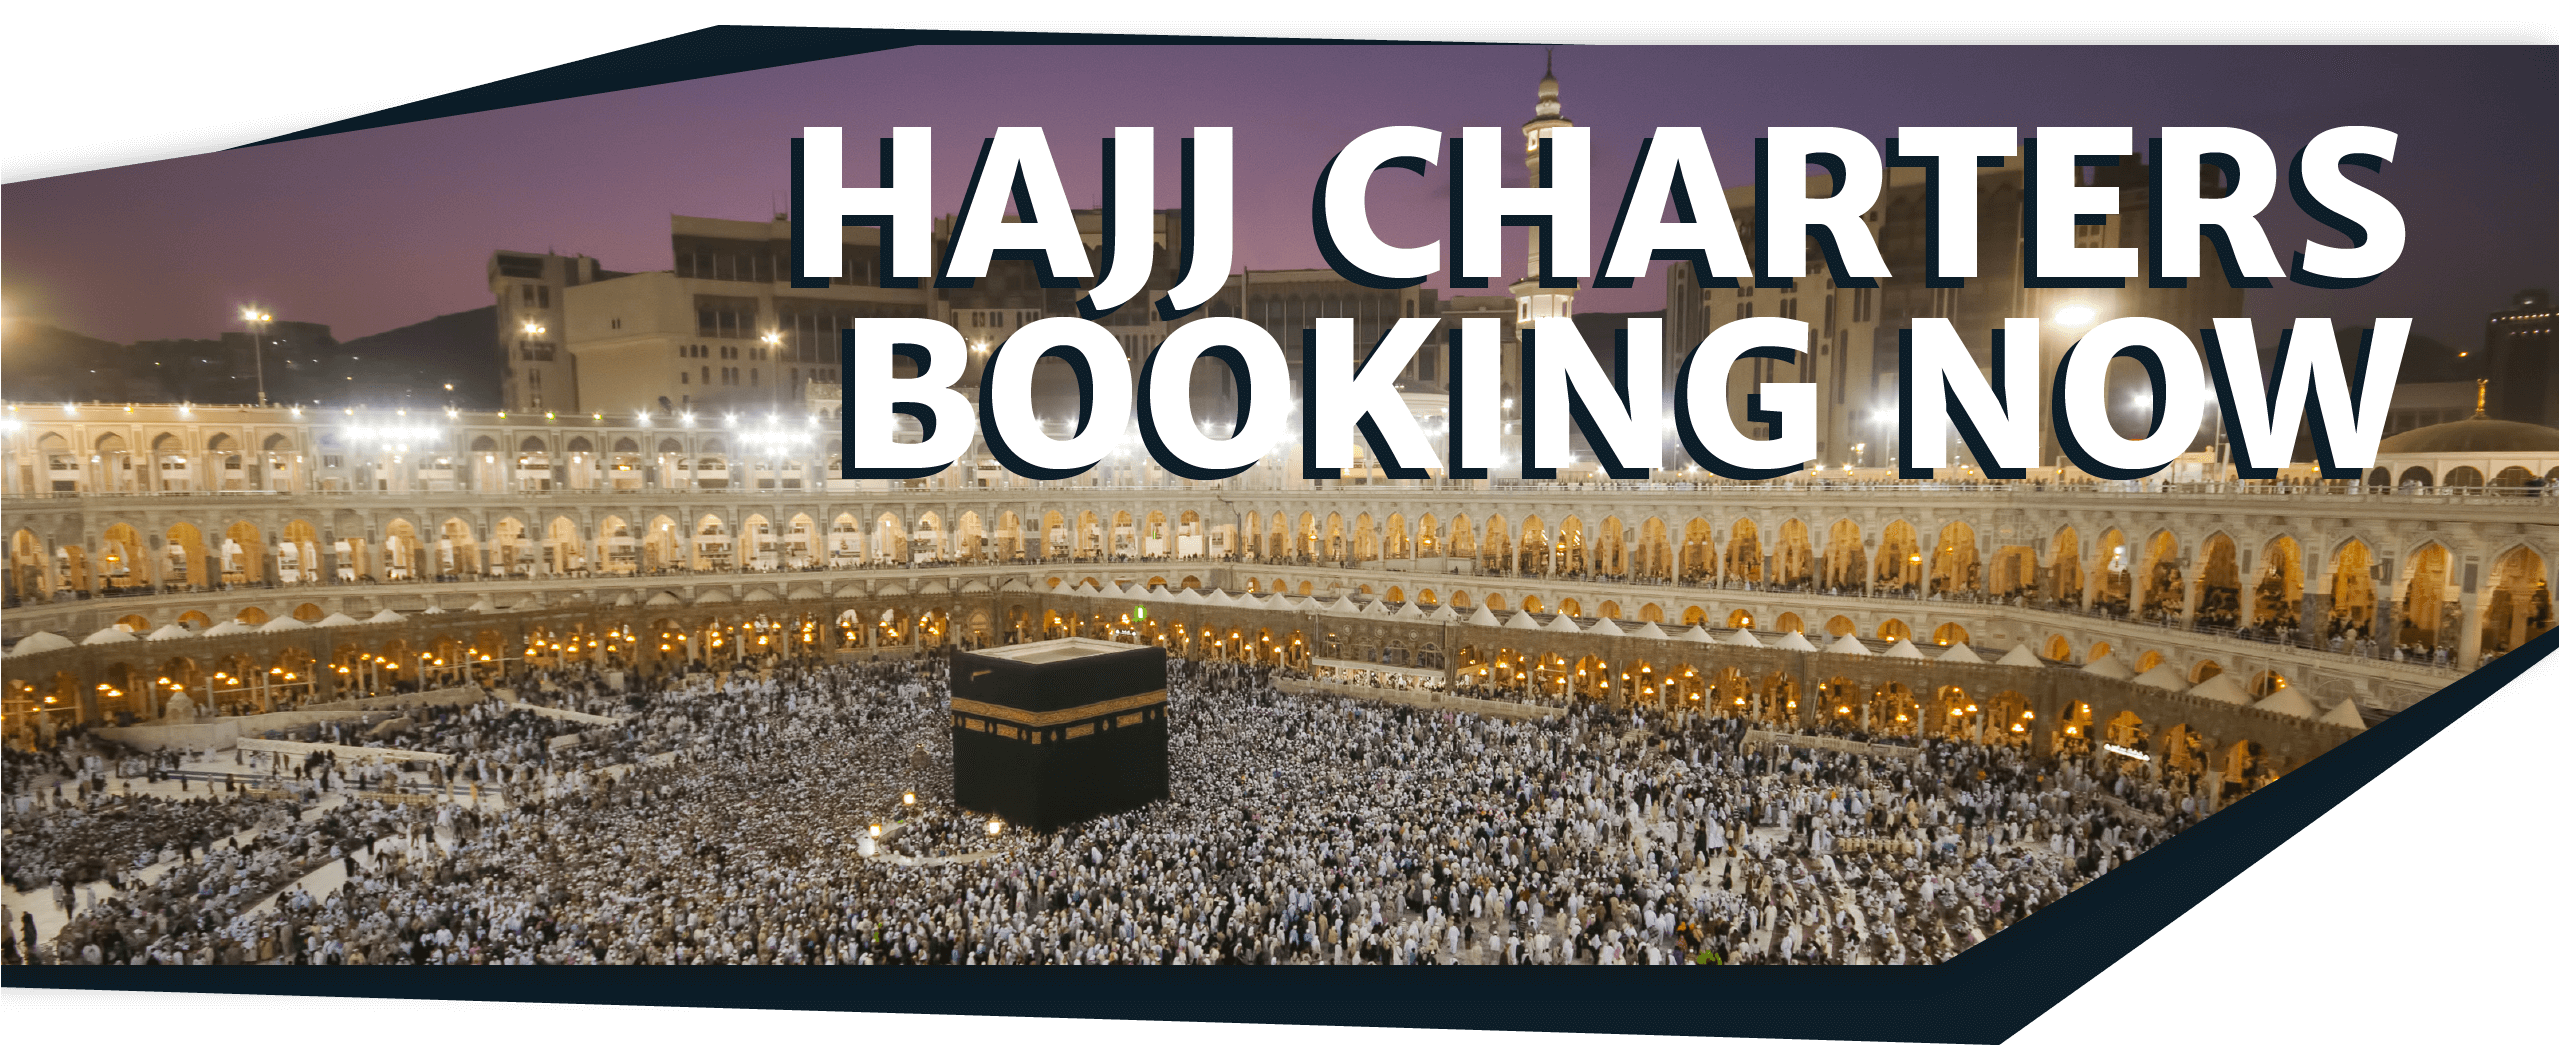 Book Your Hajj Charter